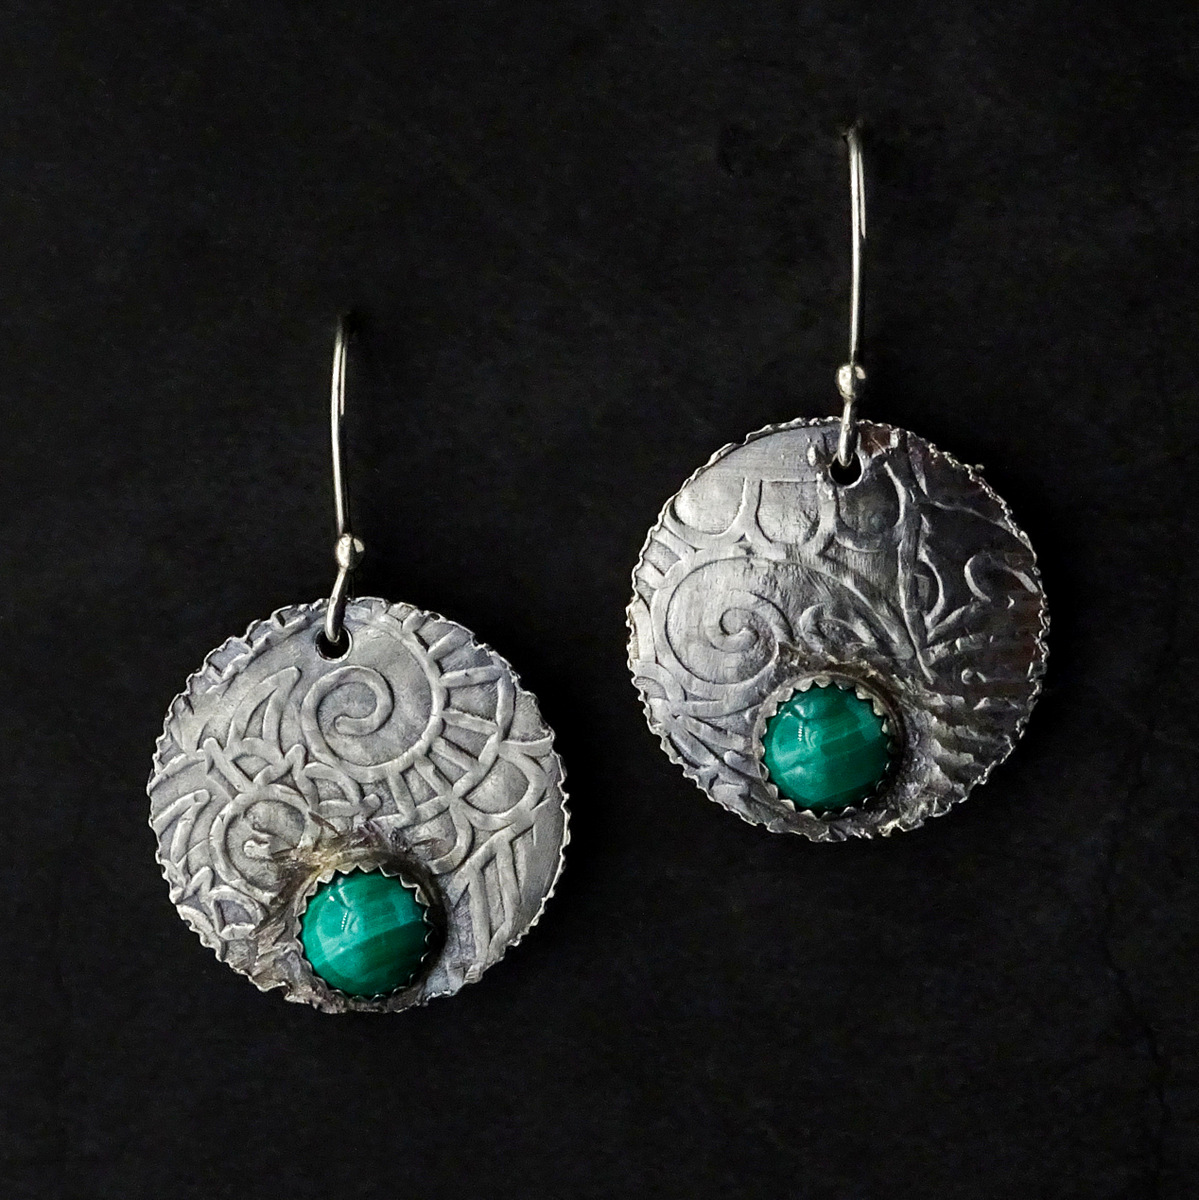 EMBOSSED DISCS WITH GREEN STONE EARRINGS,  Silver Ear Wires,  1 x 1 inches - 1.66 inches drop length